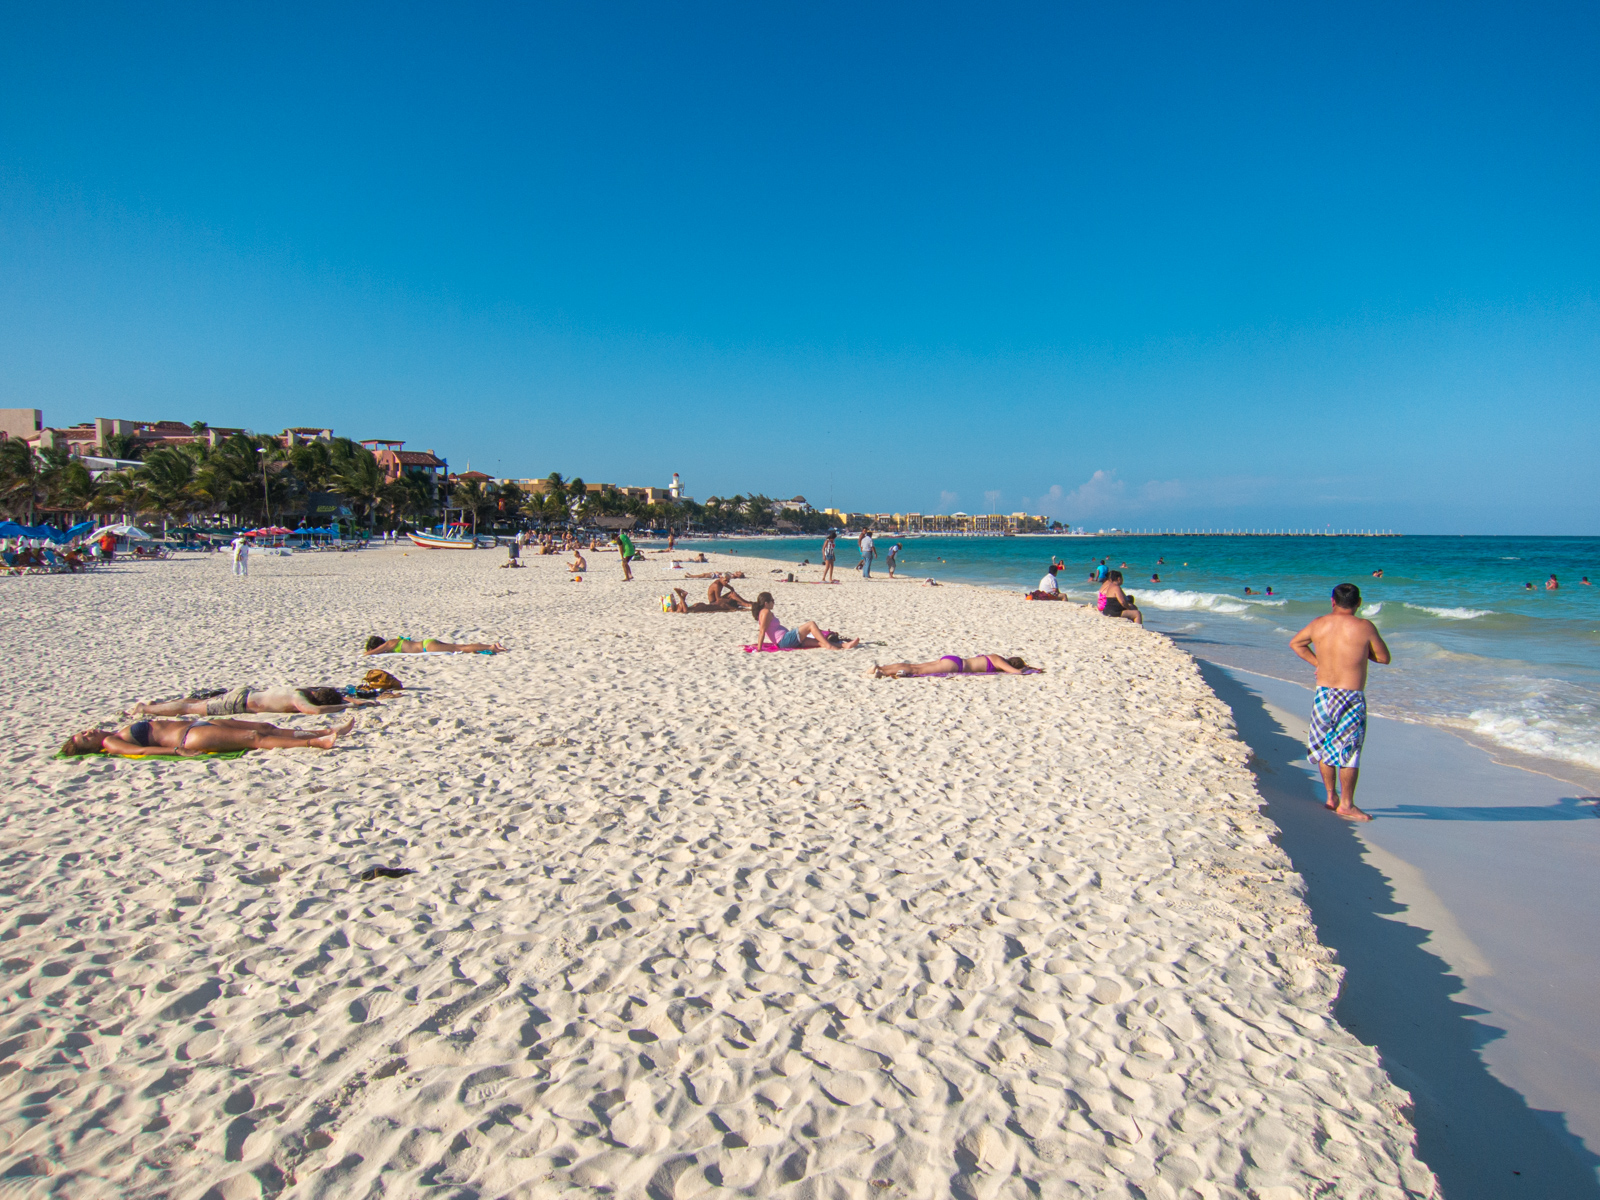 Playa del Carmen, one of the best beaches in the Riviera Maya